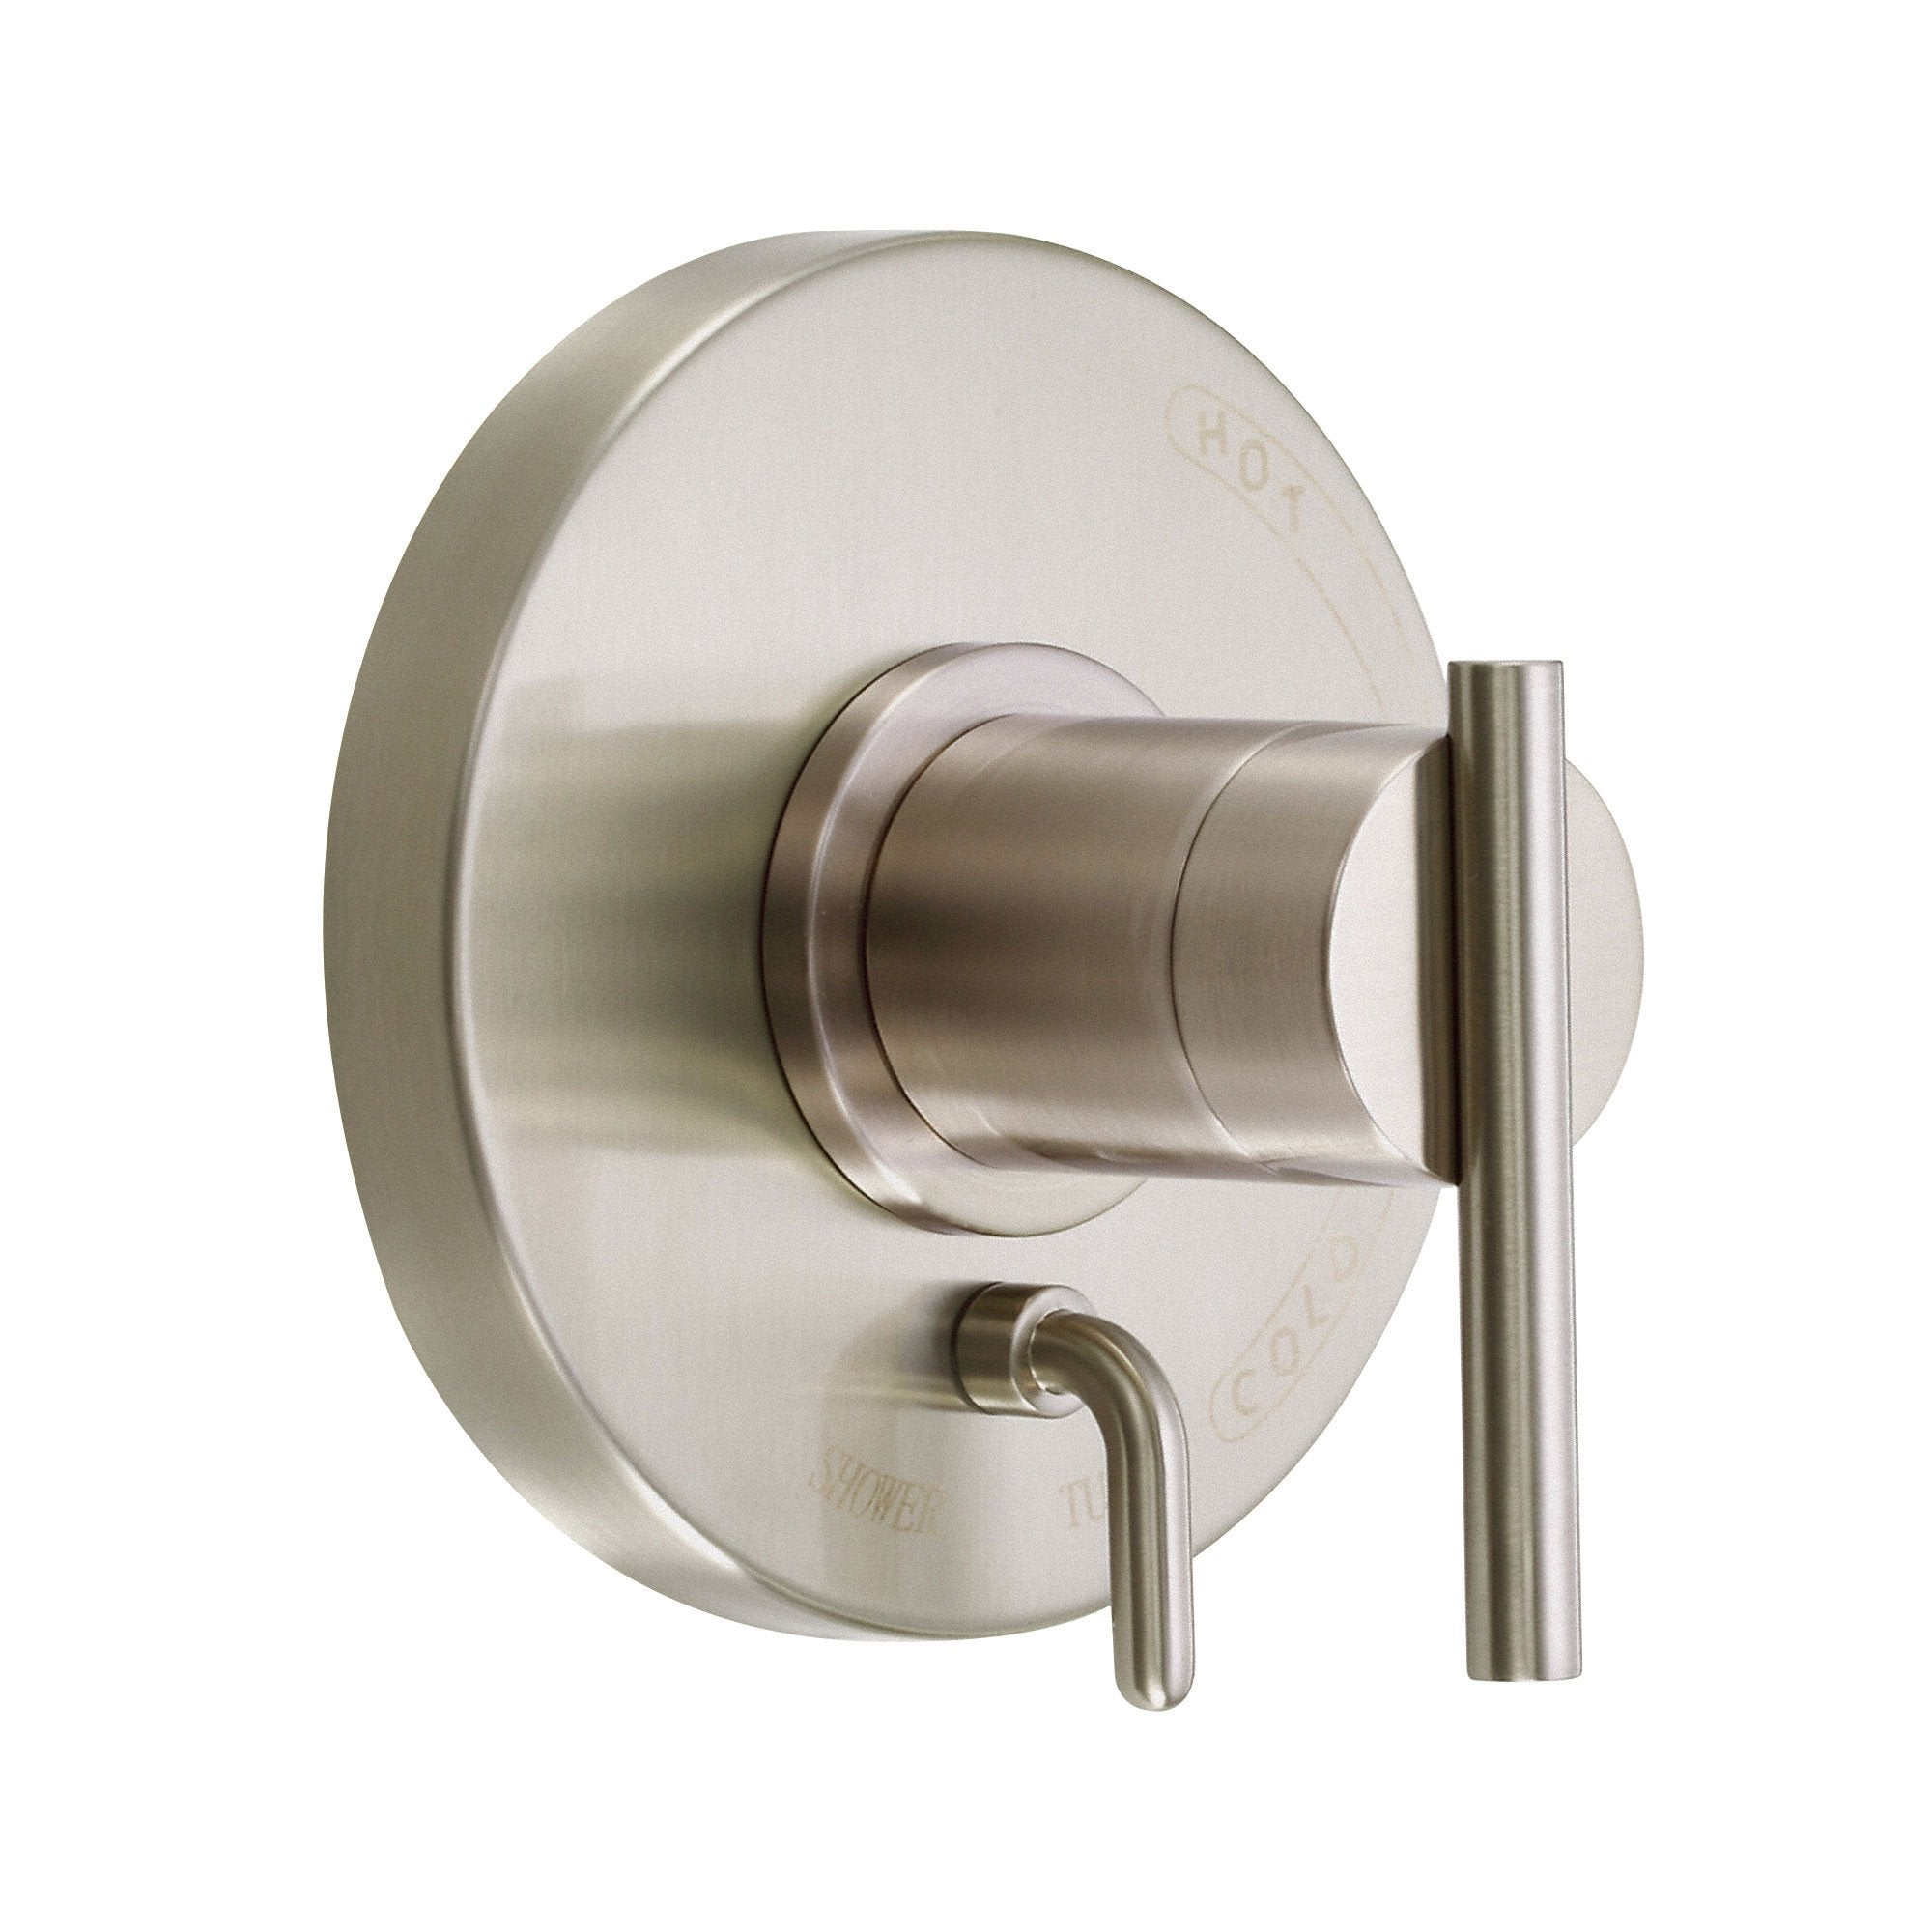 Danze Parma Brushed Nickel Pressure Balance Shower Control with Diverter INCLUDES Rough-in Valve